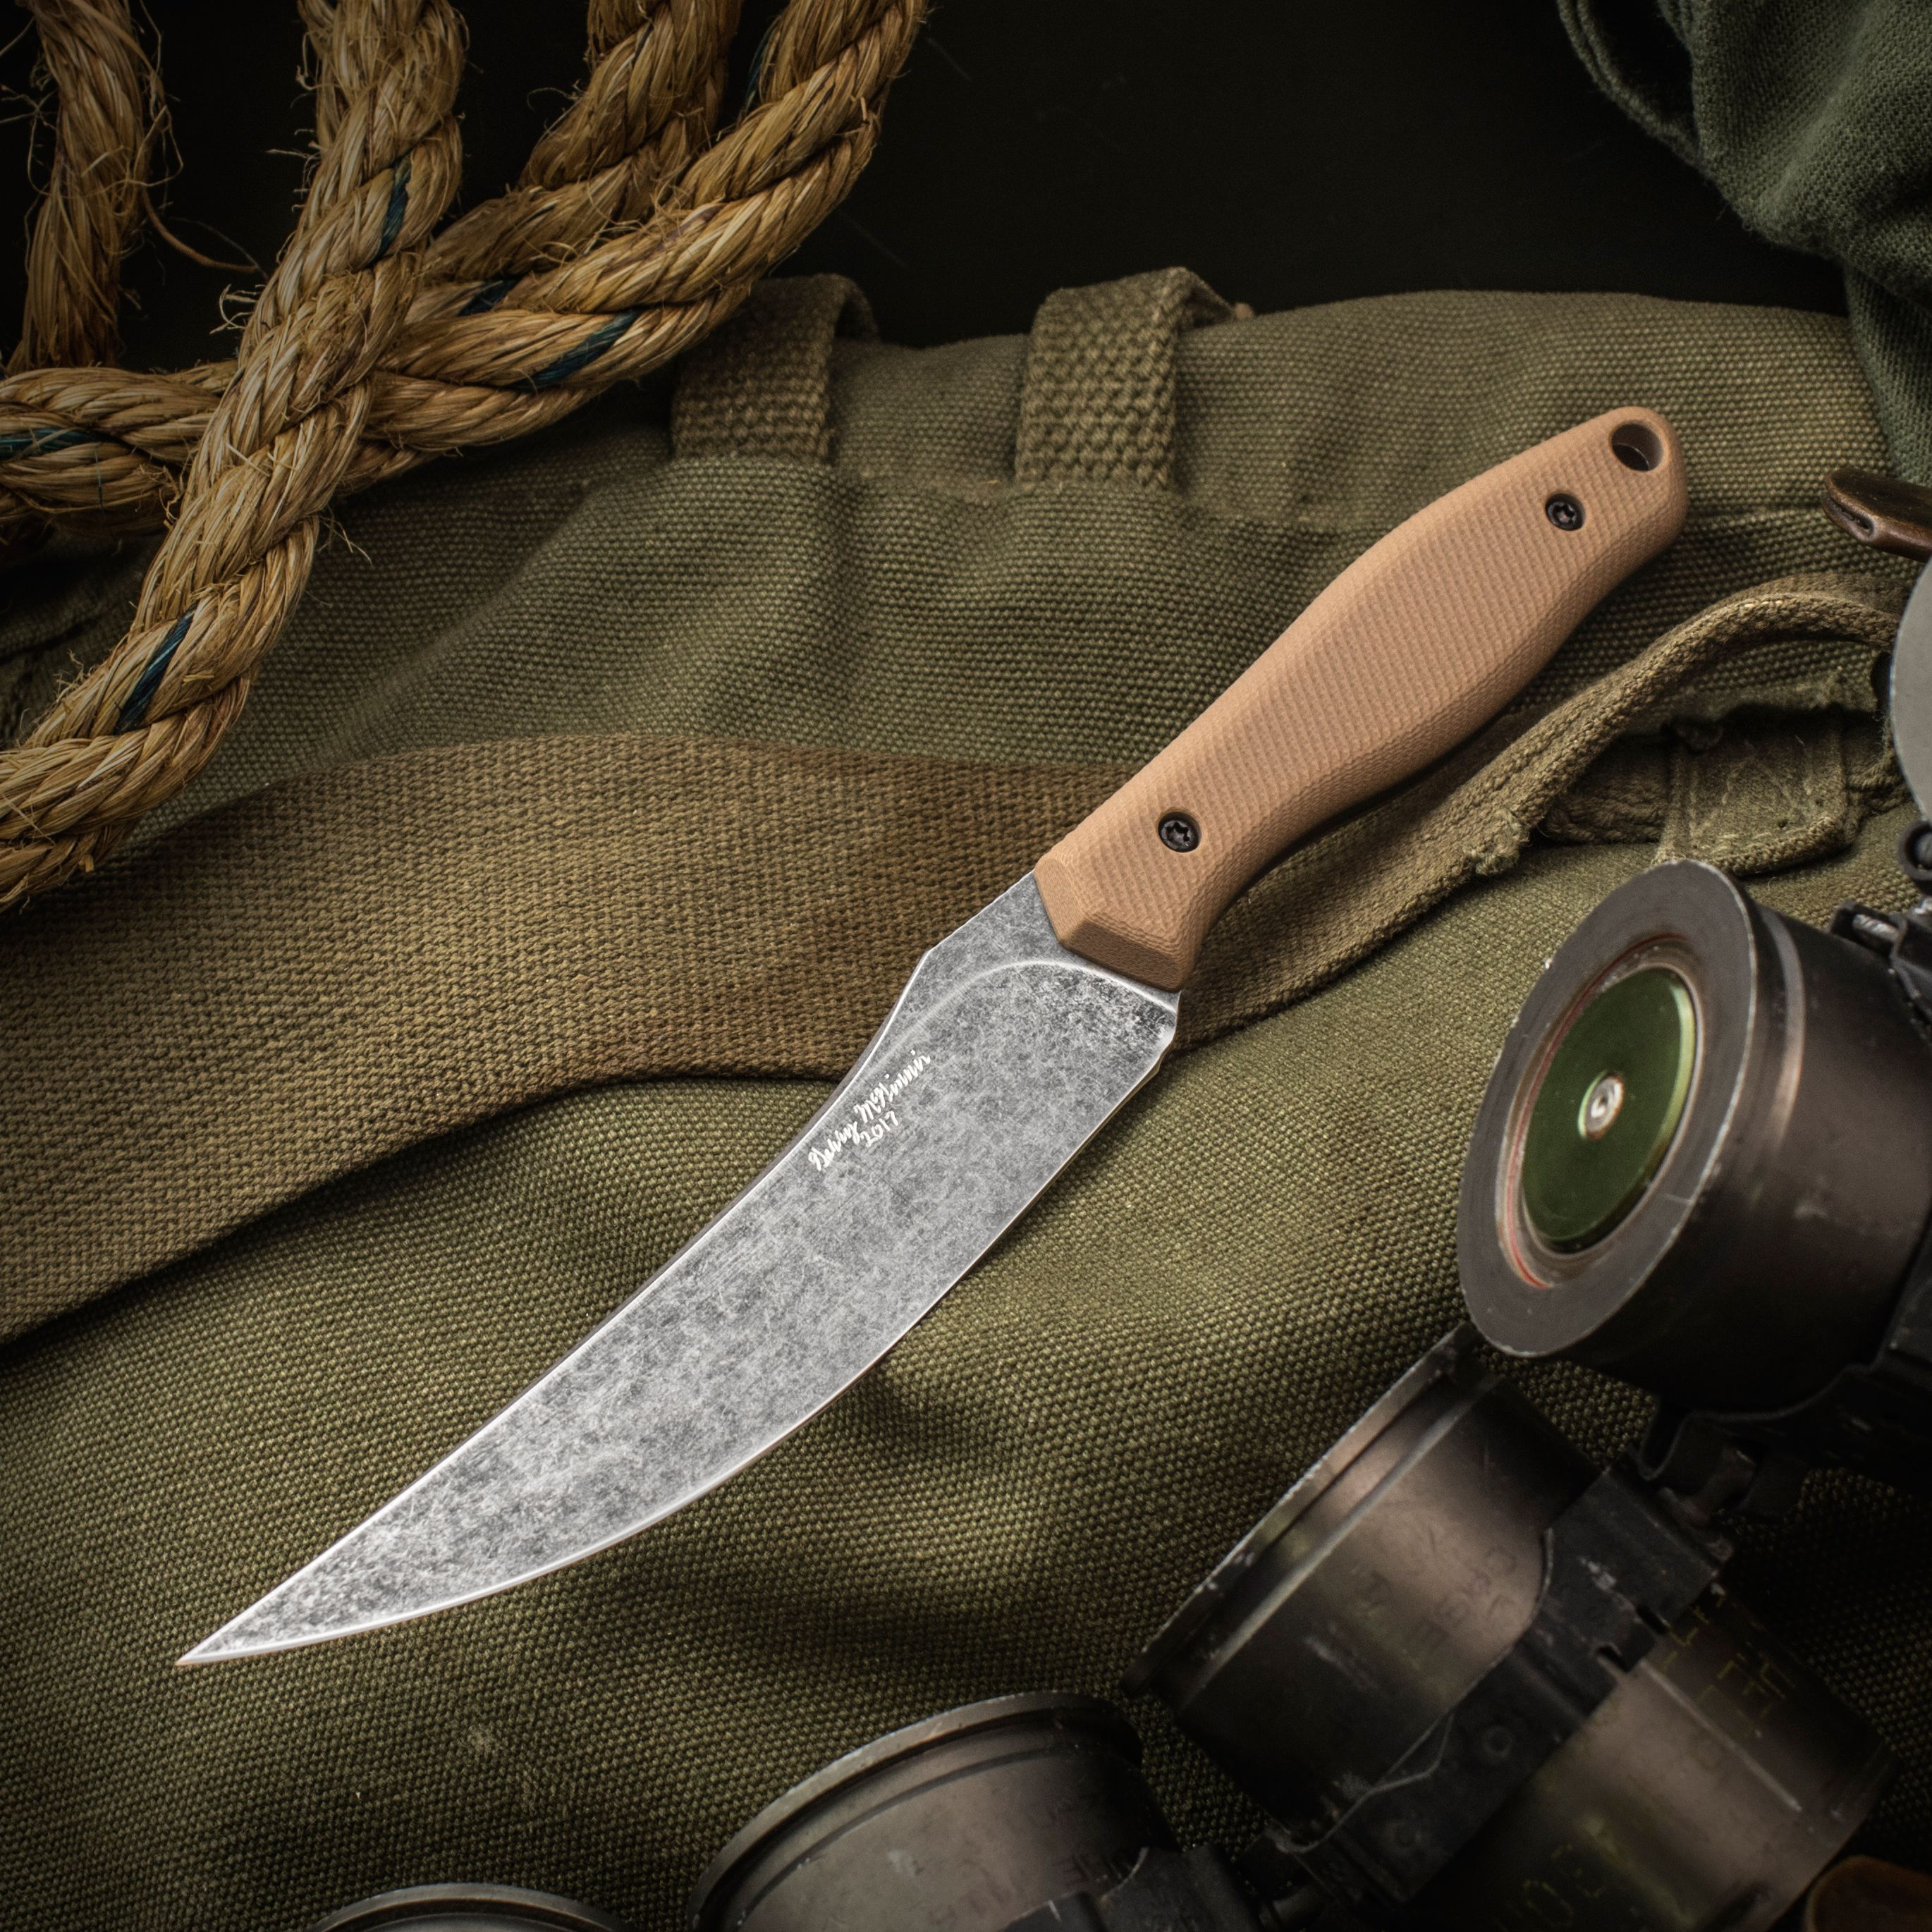 Gerry McGinnis Custom Skinner Fixed 4.5 inch CPM-154 Acid Washed Blade, Tan G10 Handles, No Sheath